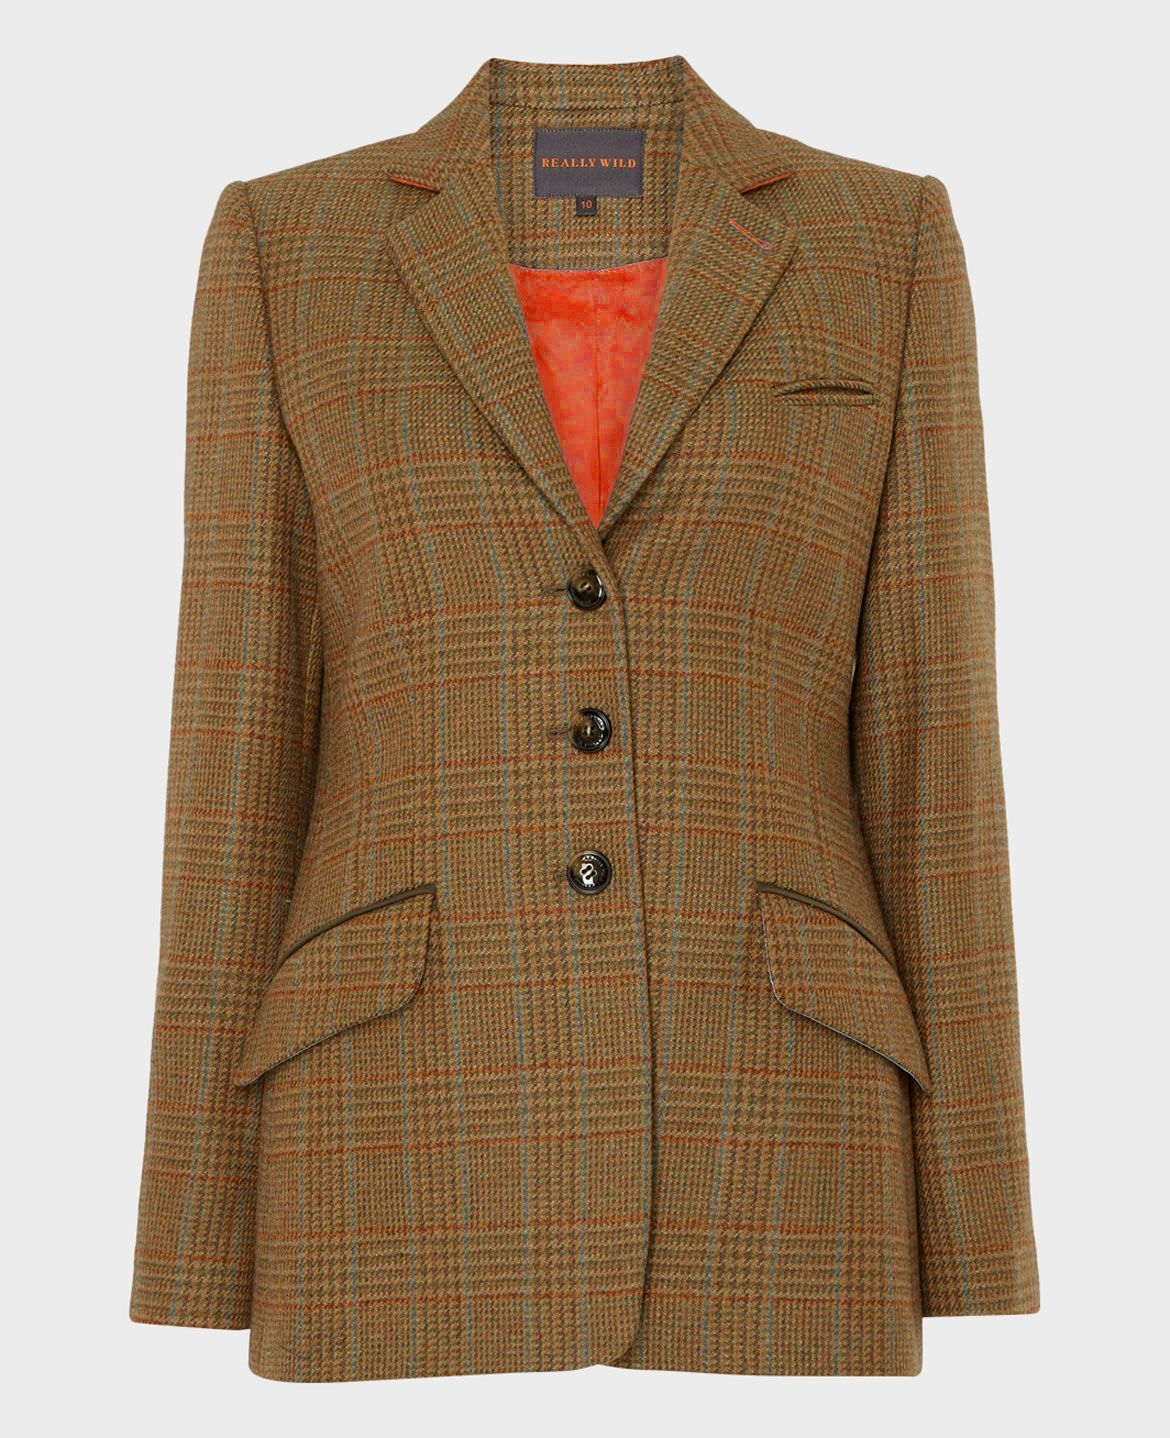 Ledbury Tweed Jacket, Acorn Blue